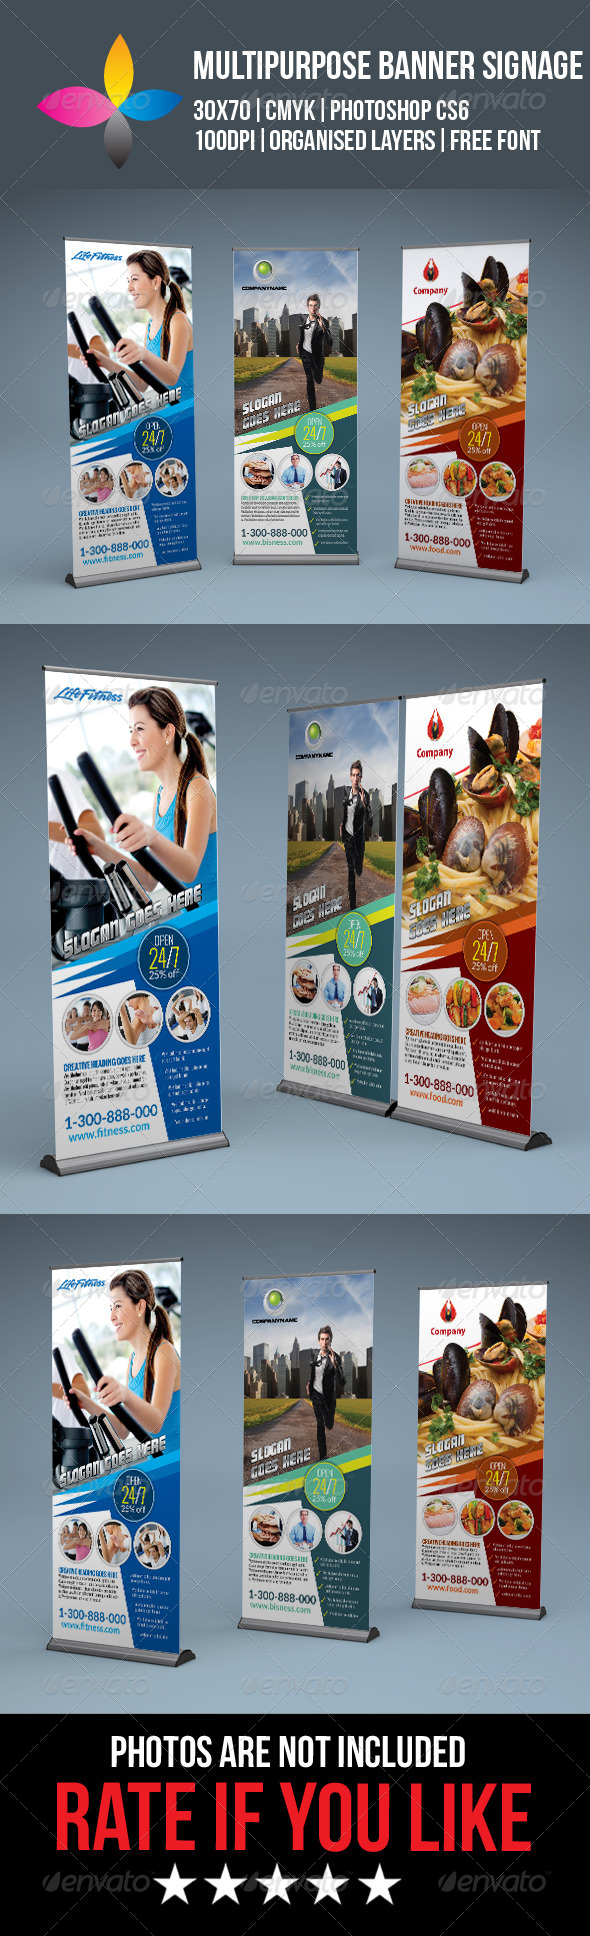 GraphicRiver Multipurpose Roll Up Banner Signage 8258783